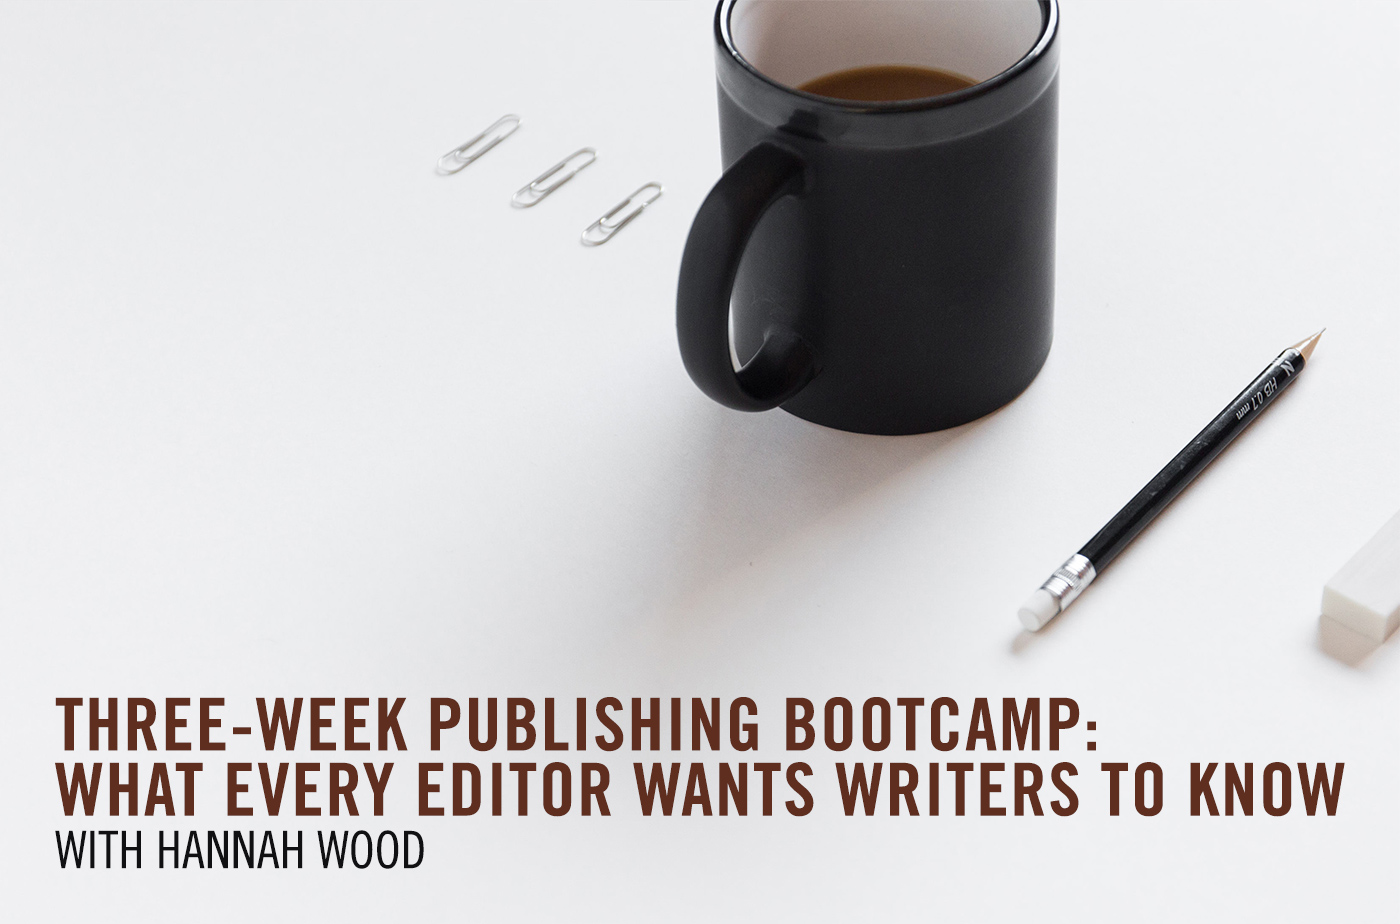 Catapult online classes: Hannah Wood, 3-Week Online Publishing Bootcamp: What Every Editor Wants Writers to Know , Publishing, Bootcamp